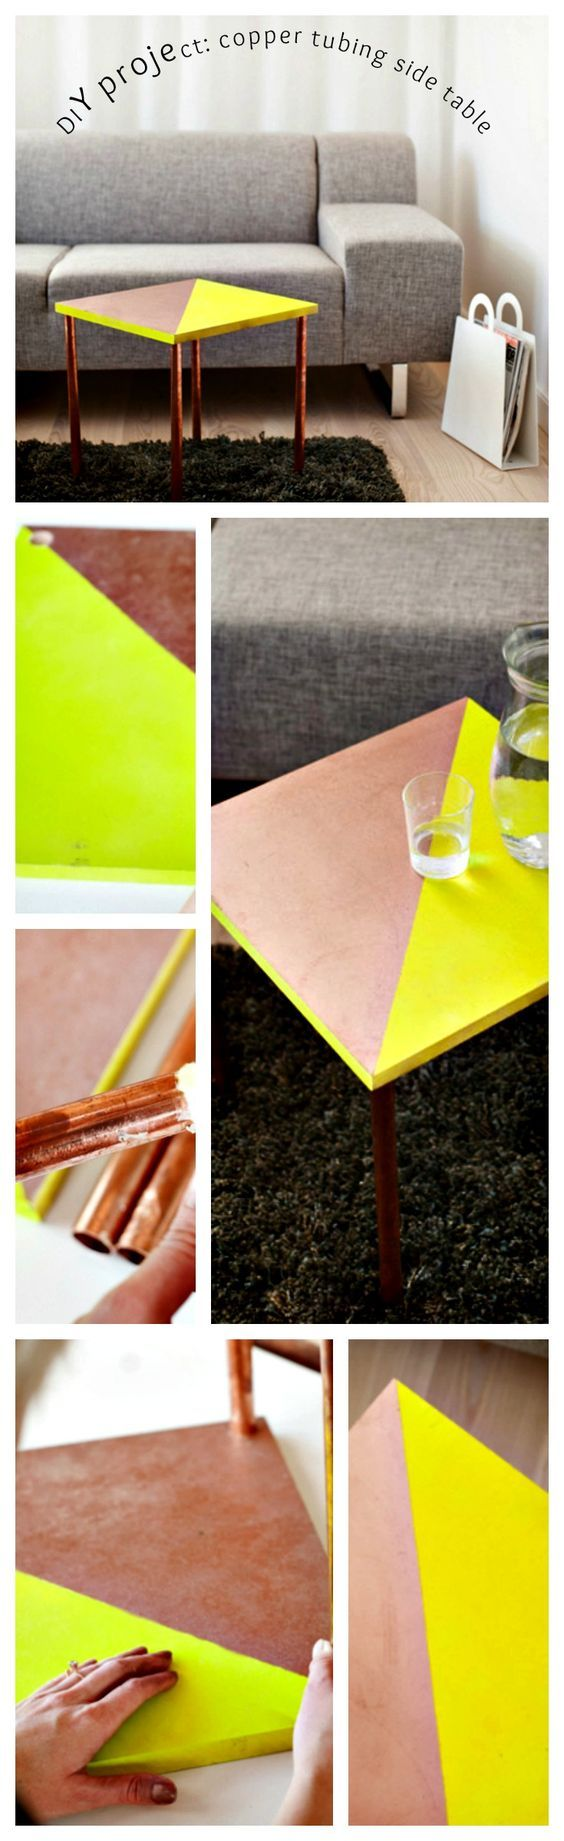 1 diy project copper tubing side table via simphome